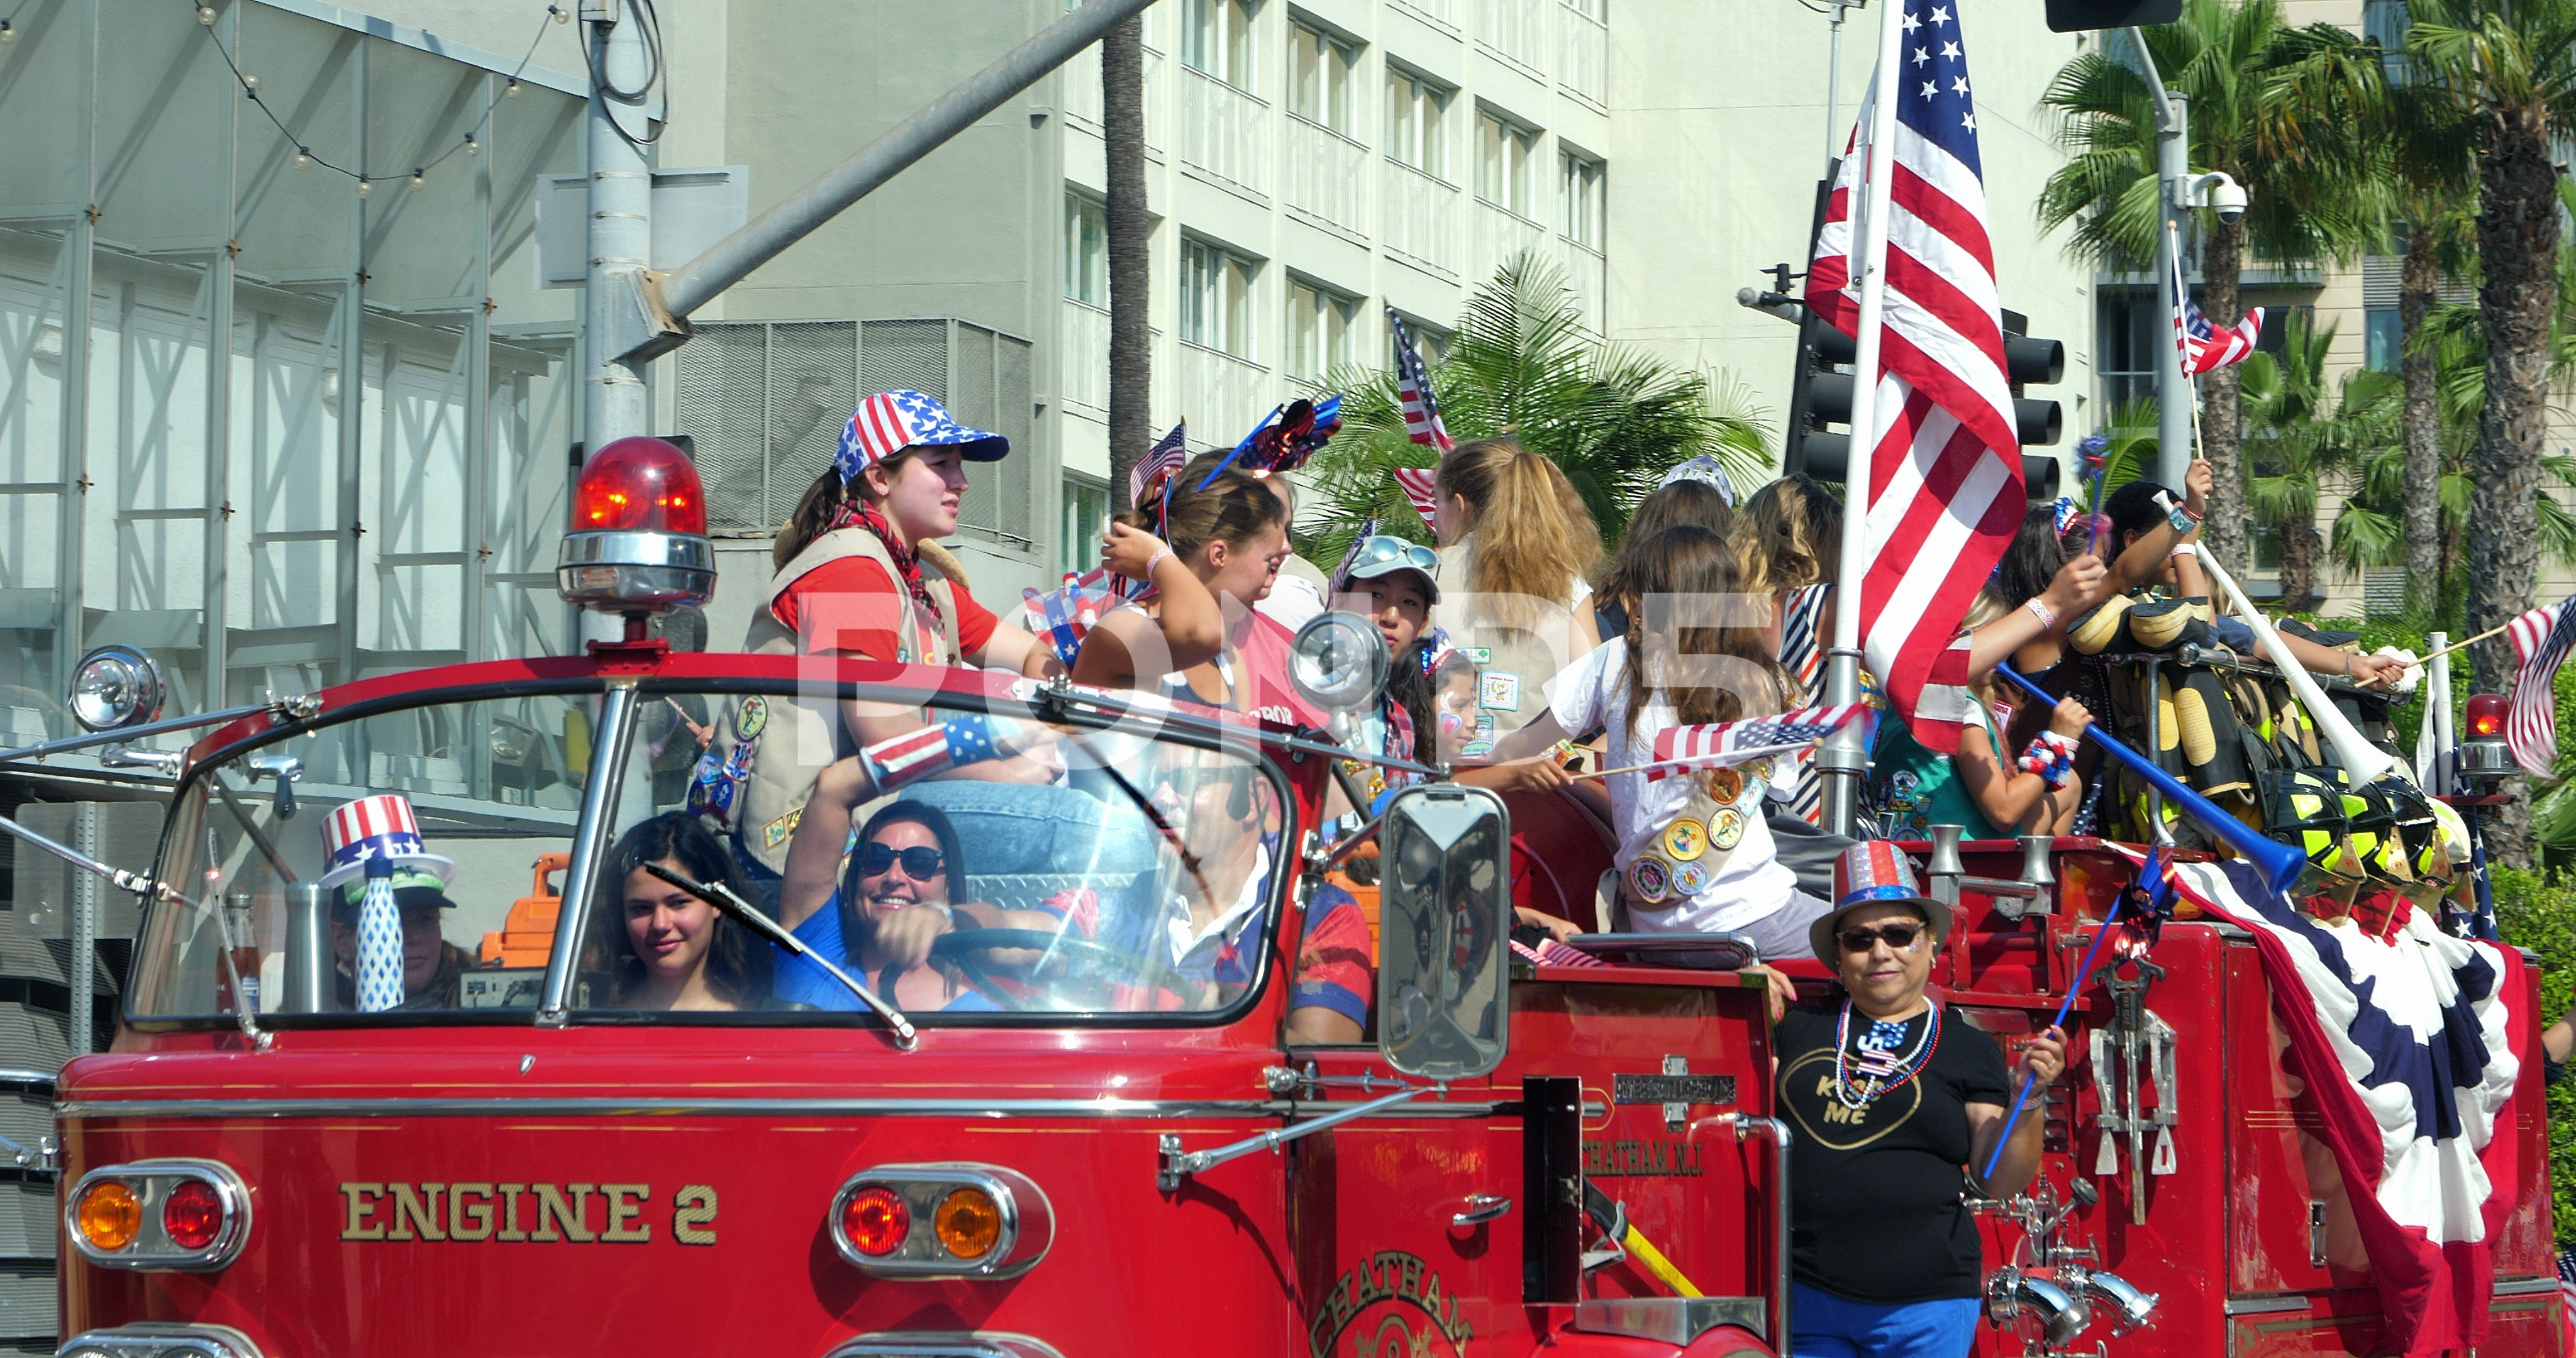 Los Angeles Fire Department Truck With People At 4 Of July Parade 4k Stock Footage Ad Depart Los Angeles Fire Department 4th Of July Parade Fire Department